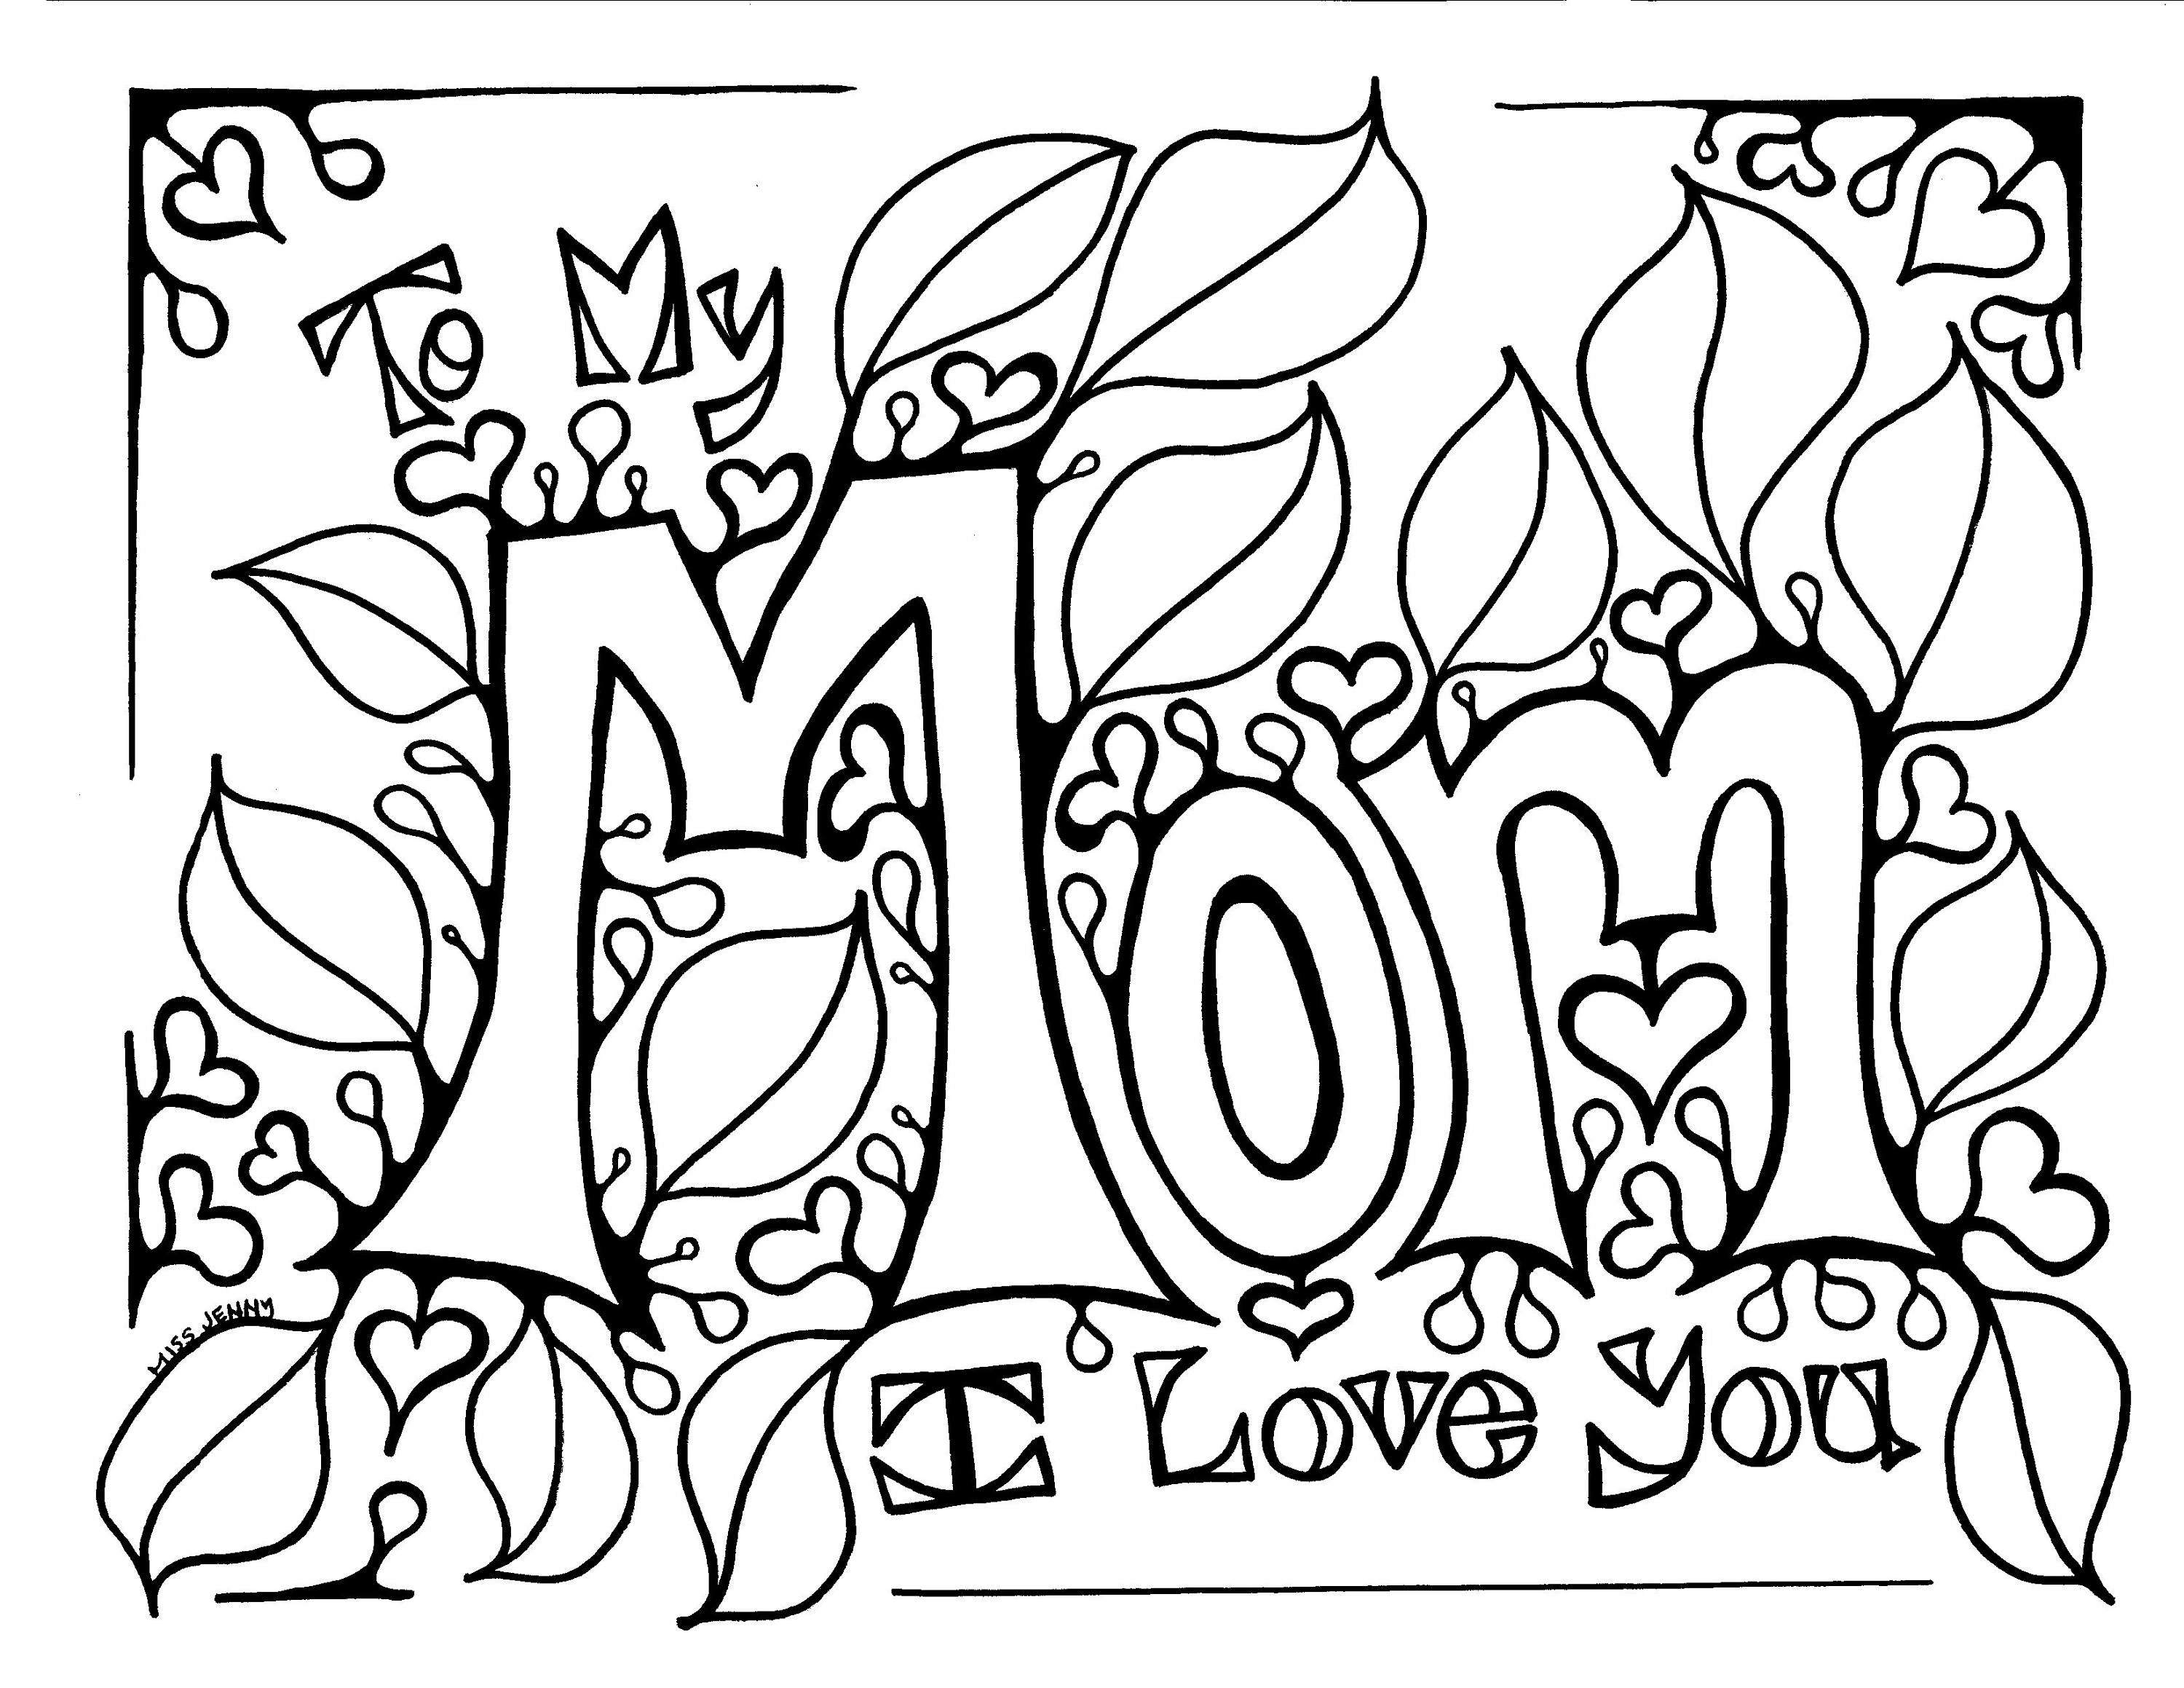 To My Mom I Love You Mother S Day Coloring Page By Missjennydesignsus On Etsy Mothers Day Coloring Pages Mom Coloring Pages Valentine Coloring Pages